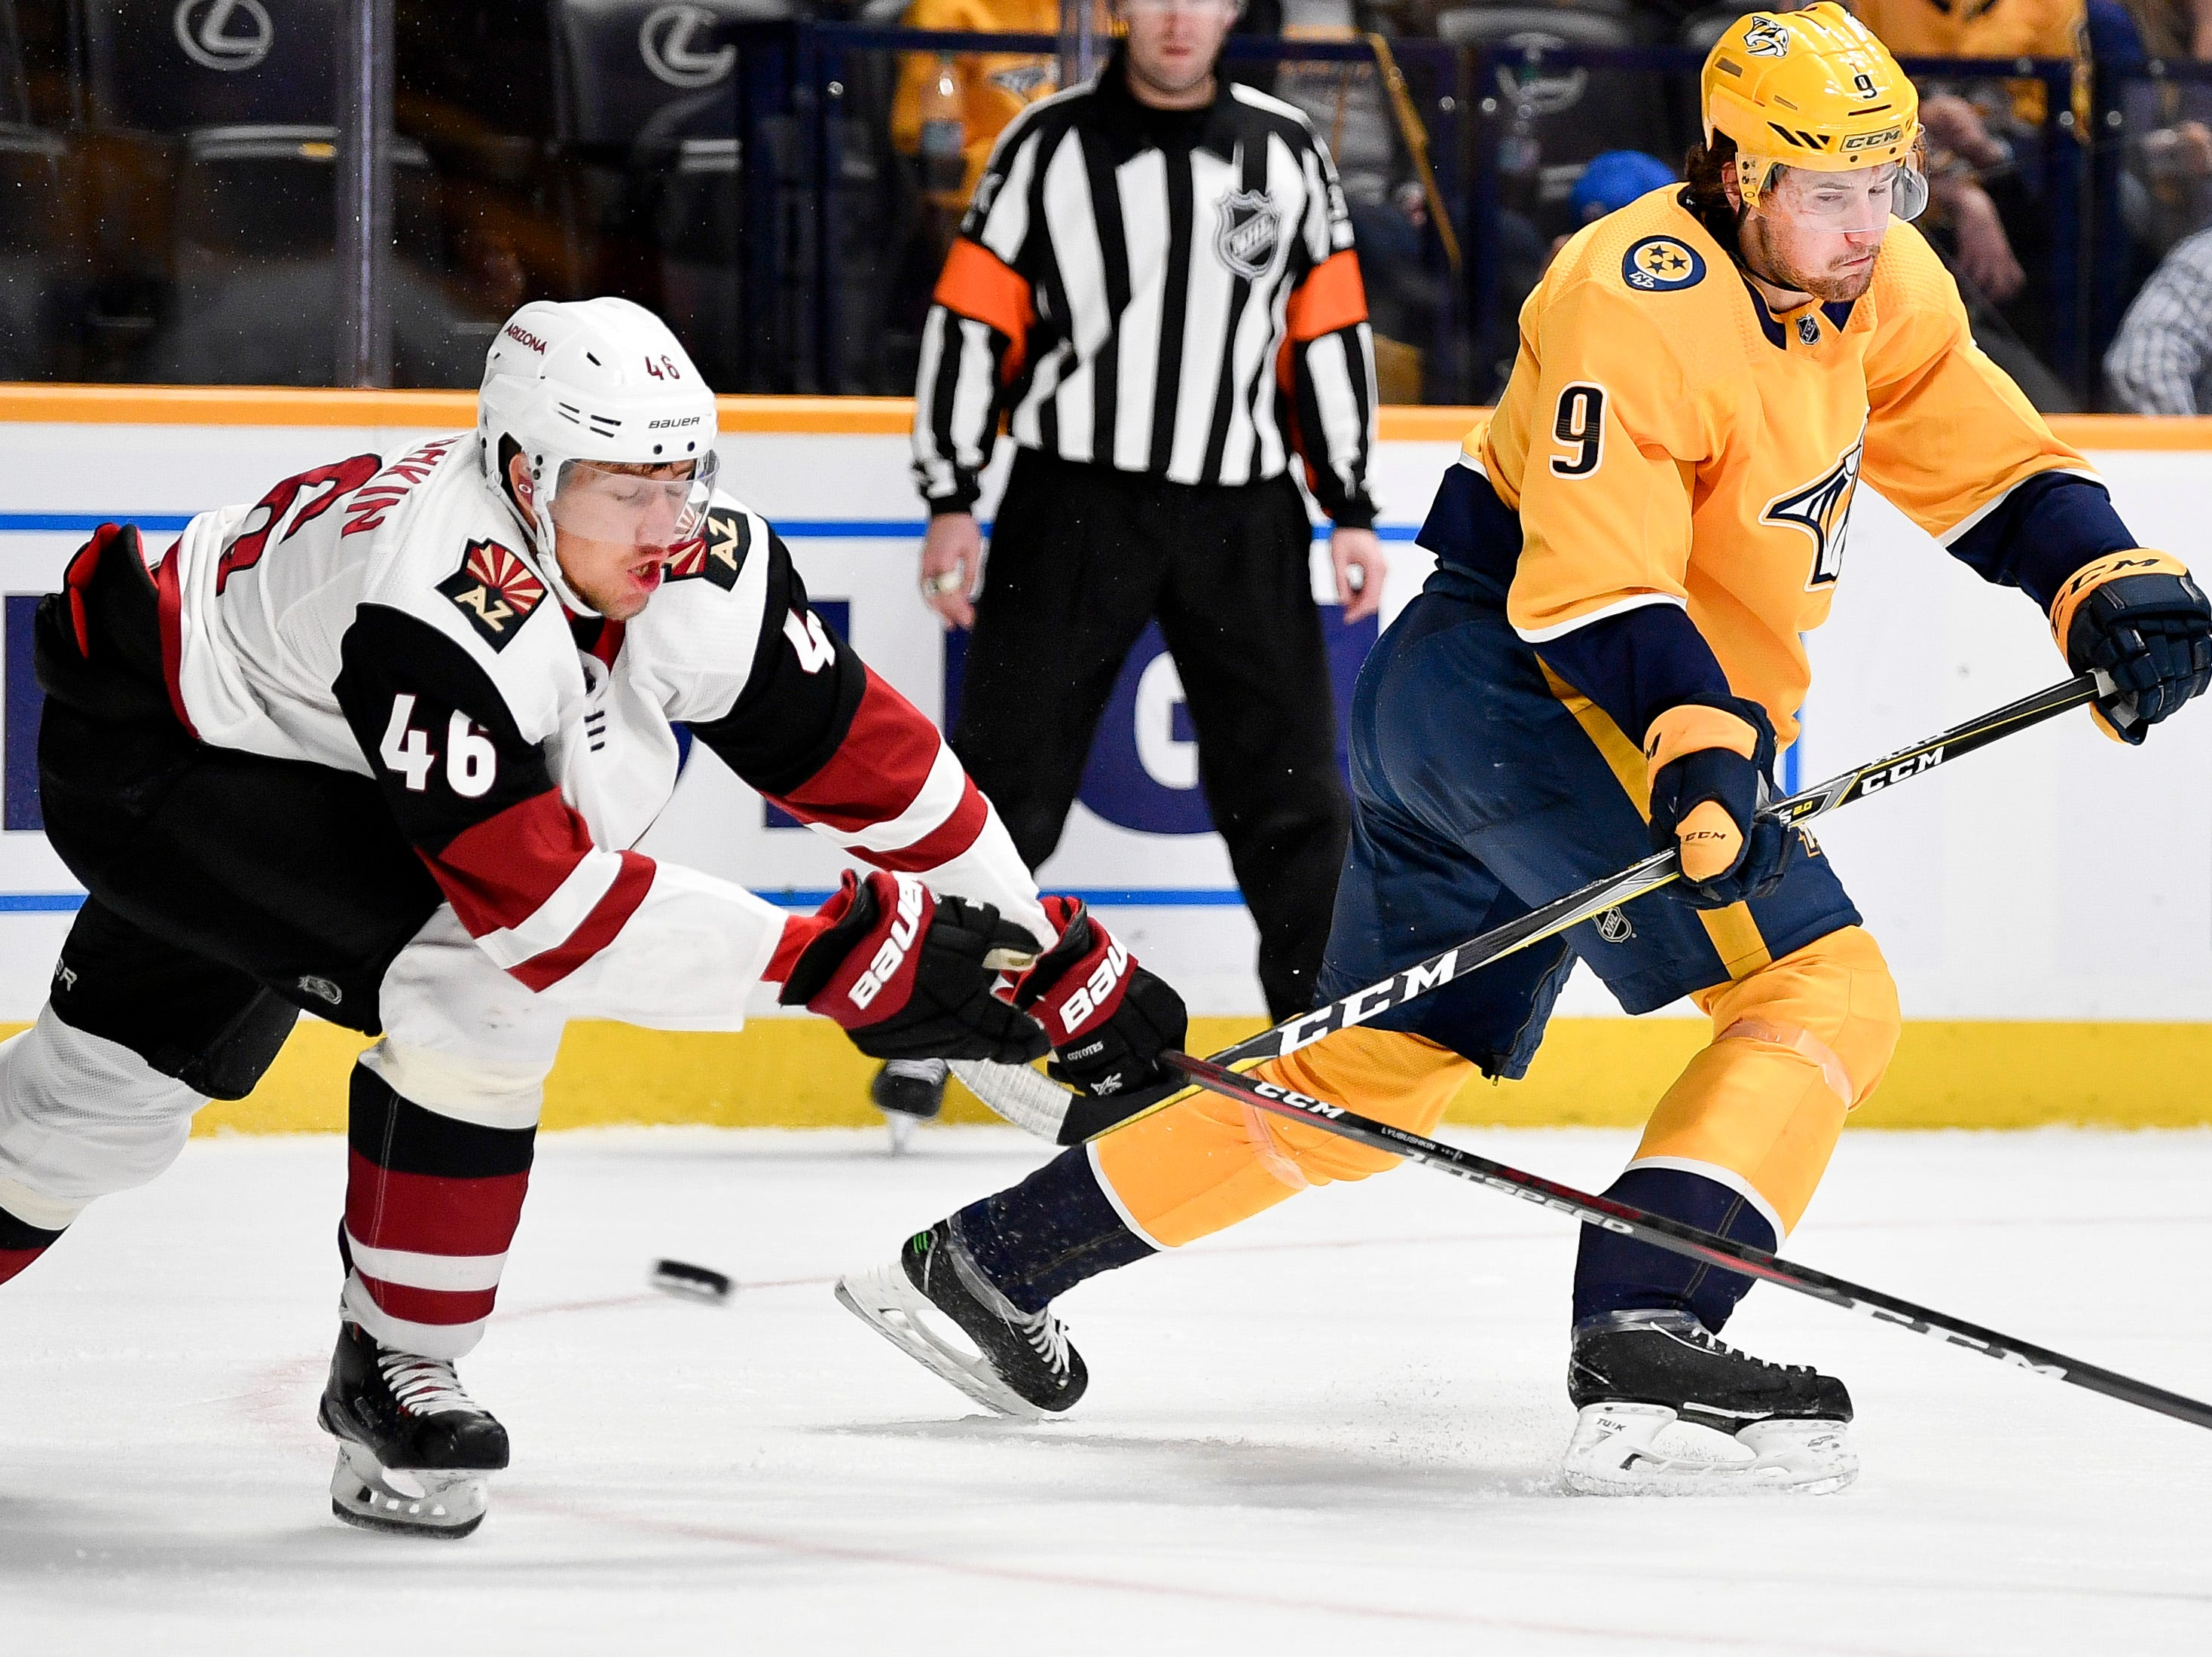 Nashville Predators left wing Filip Forsberg (9) shoots past Arizona Coyotes defenseman Ilya Lyubushkin (46) during the first period at Bridgestone Arena in Nashville, Tenn., Tuesday, Feb. 5, 2019.